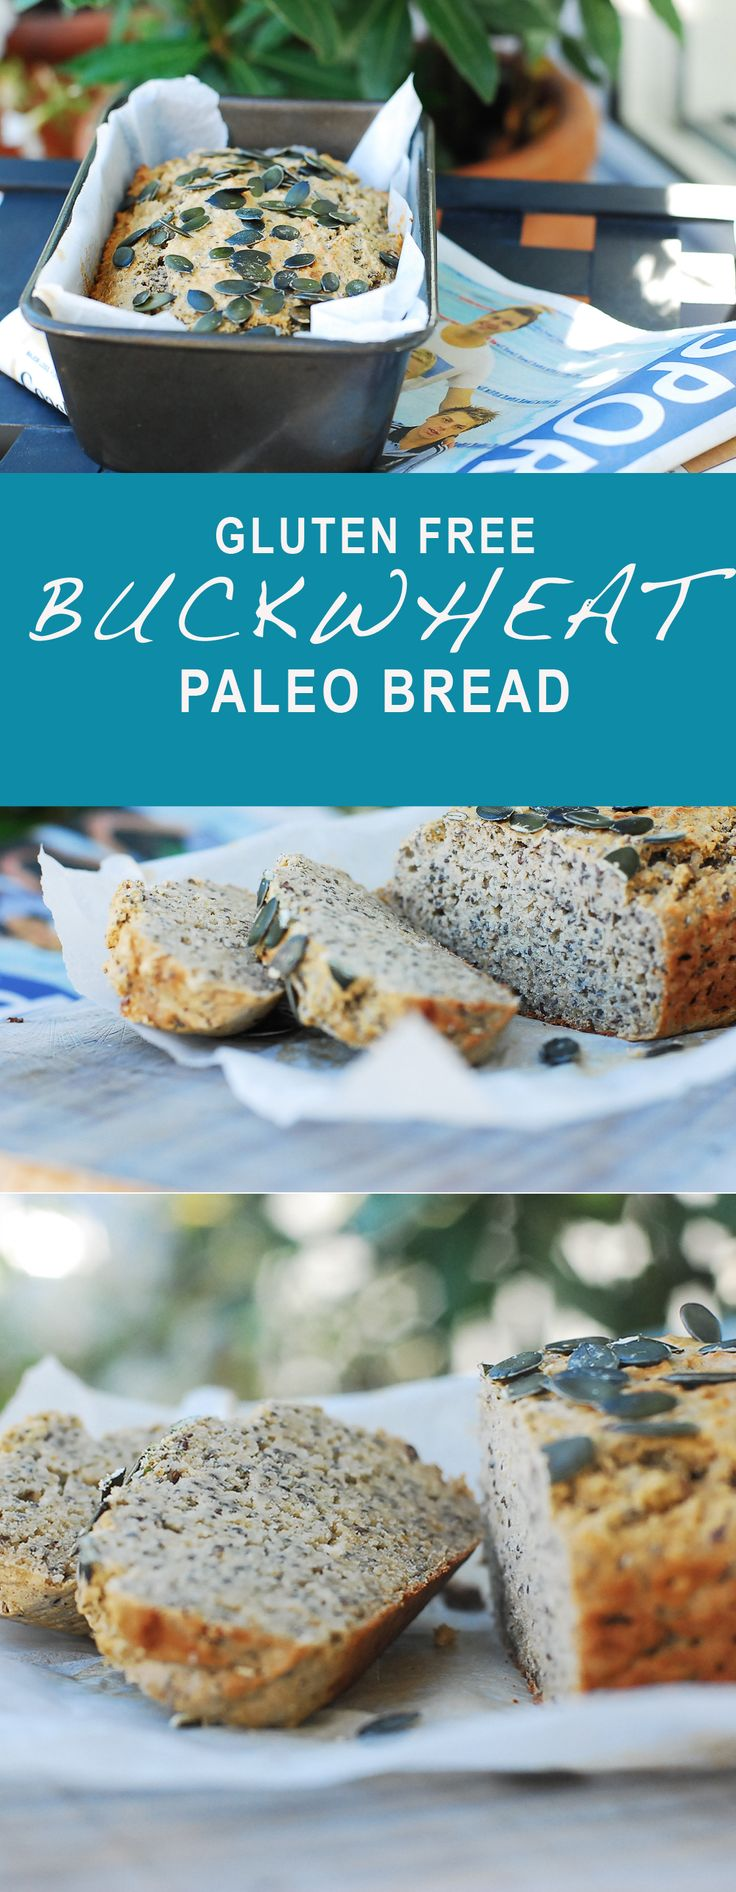 Gluten Free Buckwheat Bread. Perfect for toasting and even better right out of the oven. Paleo friendly, gluten free, grain free and naturally sugar free.